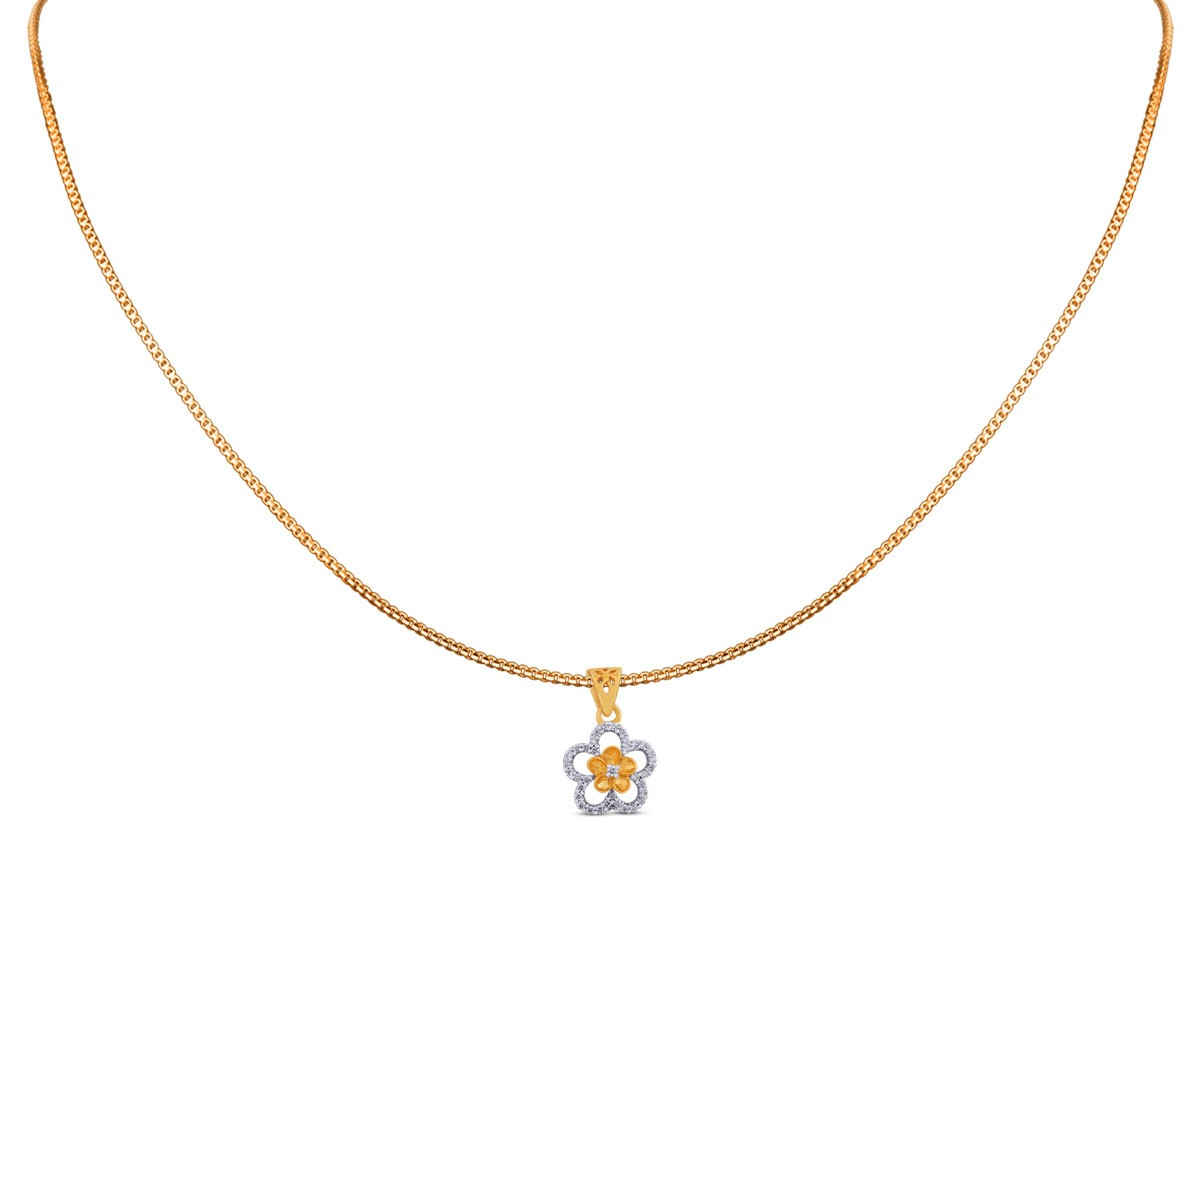 Sara Diamond Pendant with Chain